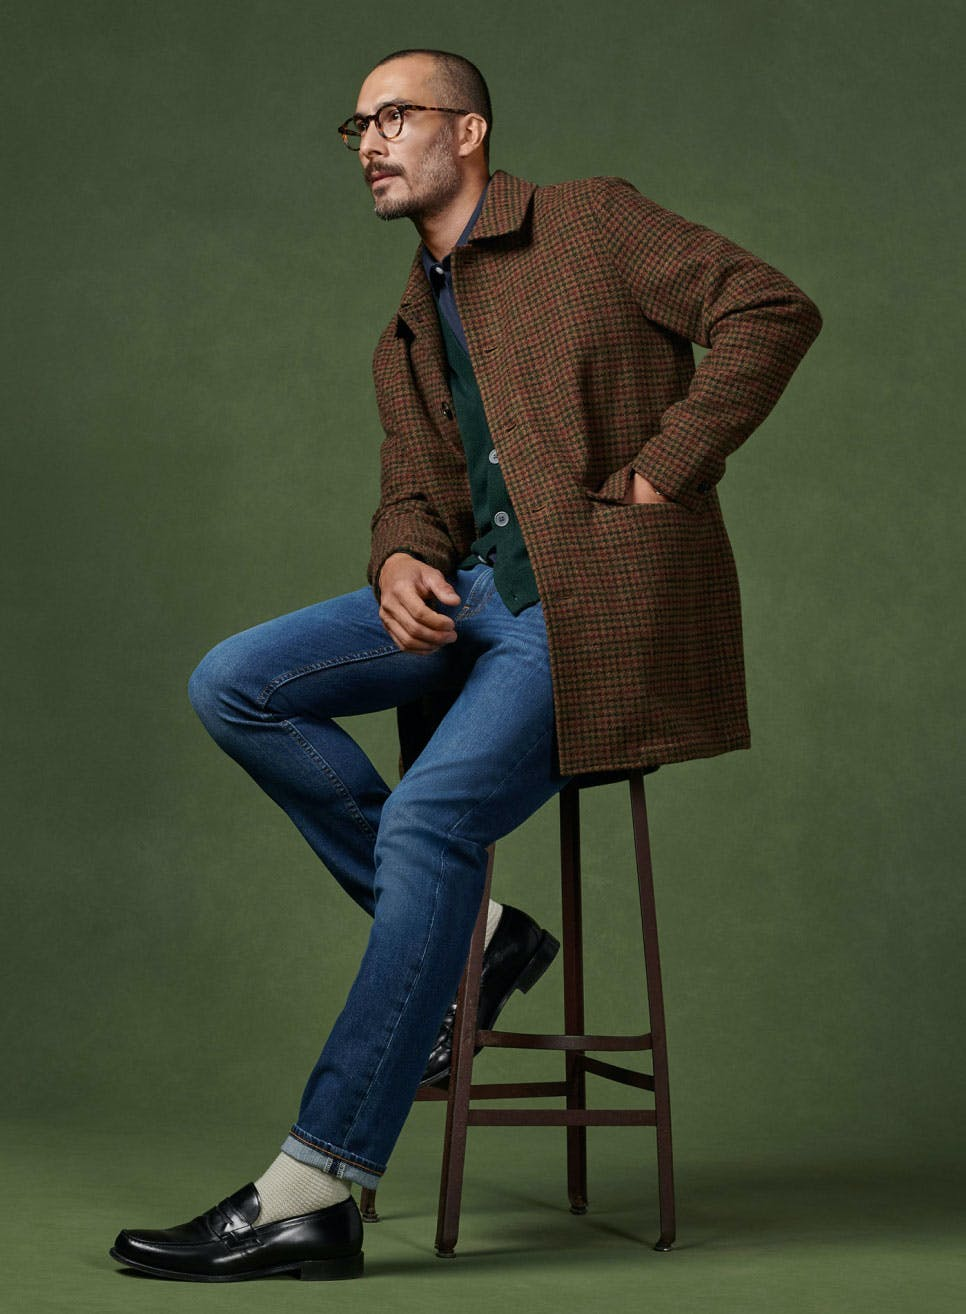 image of man sitting on a stool, wearing all season blue jeans, and brown coat